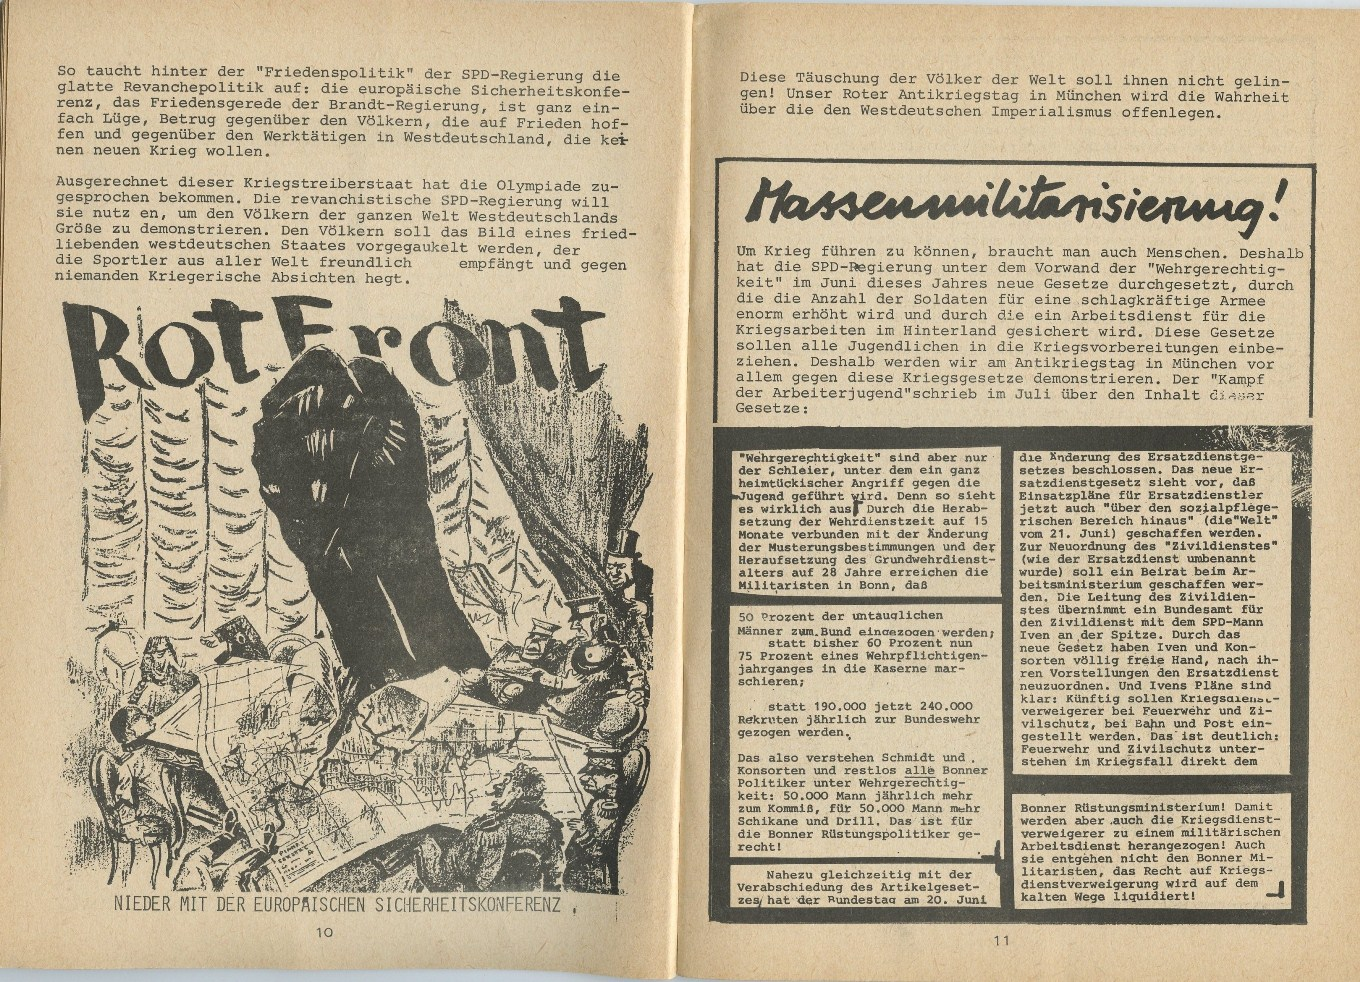 ZB_PBL_Roter_Antikriegstag_1972_07